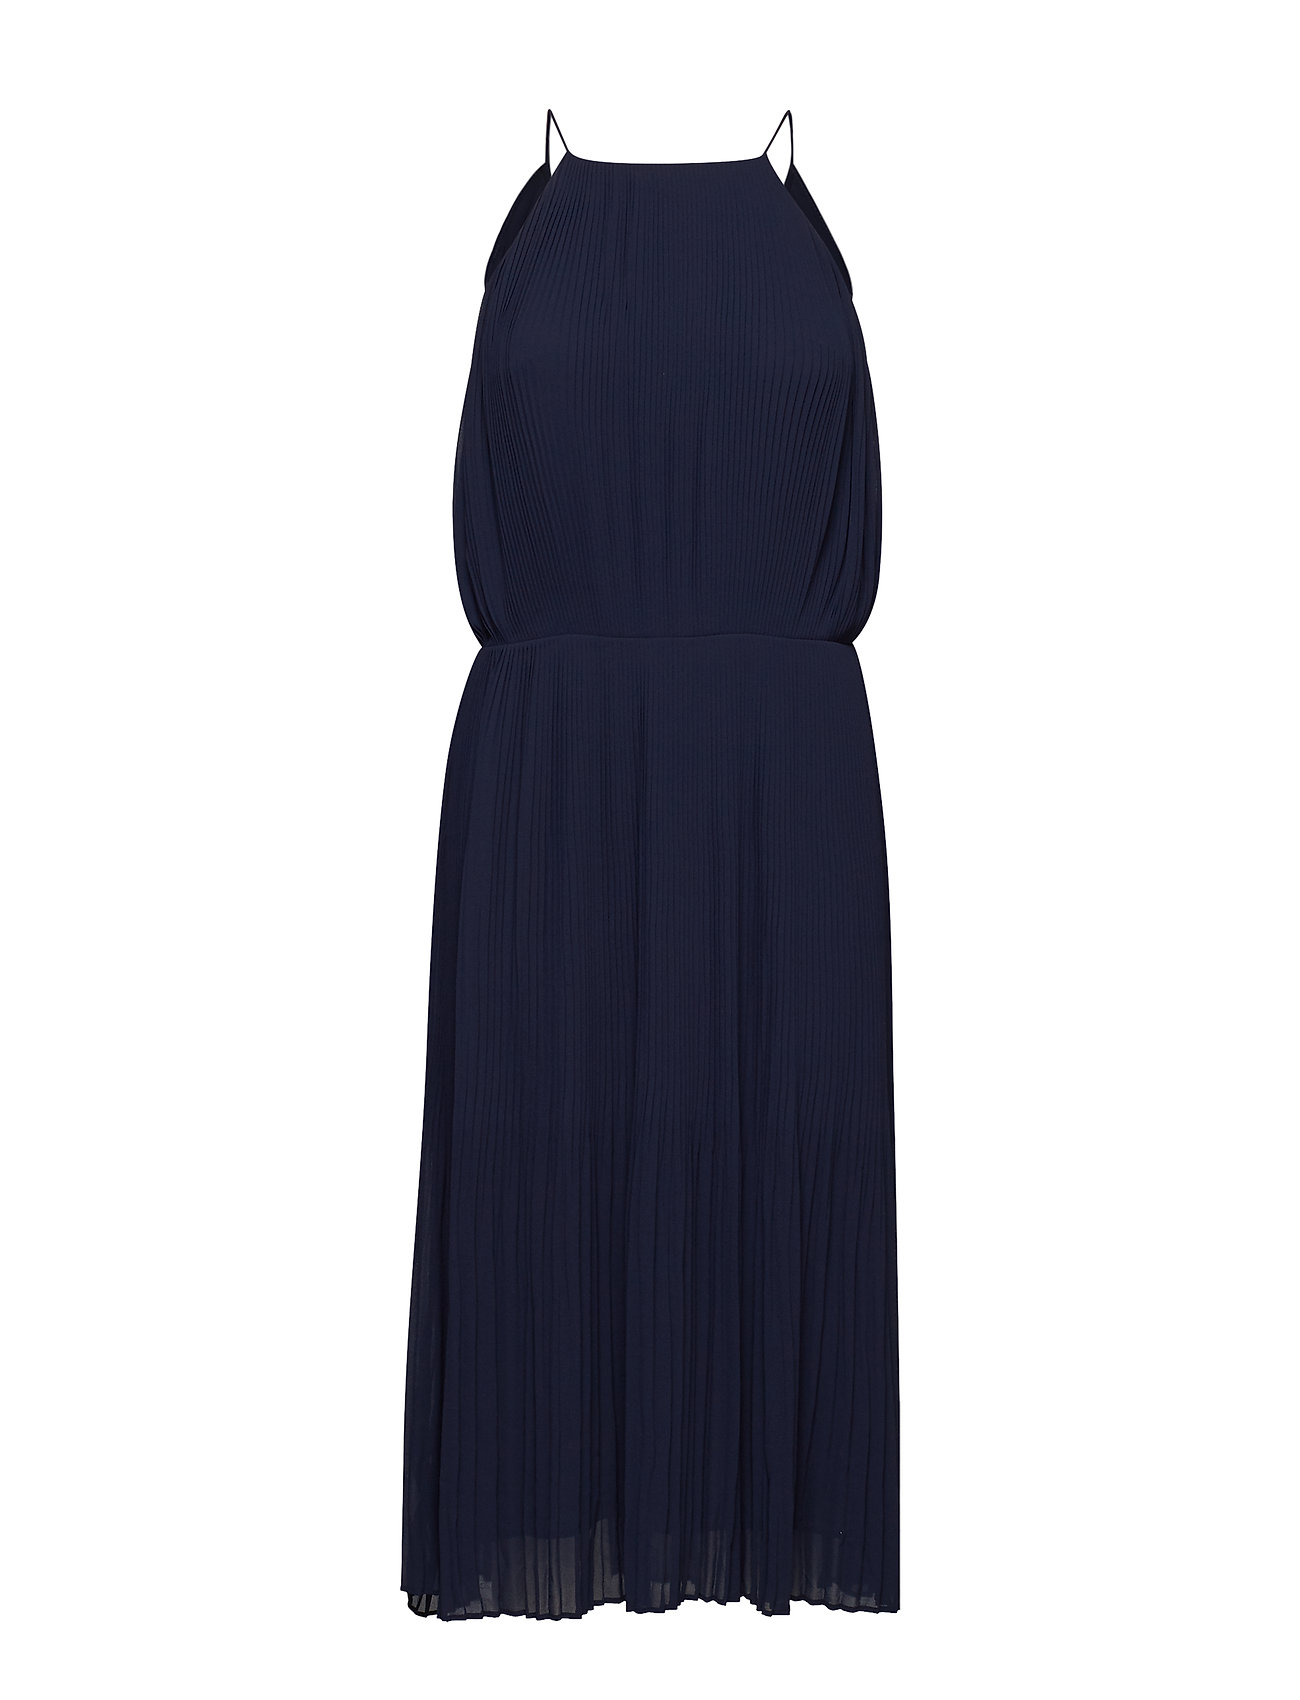 Samsøe & Samsøe Millow dress 6621 - NIGHT SKY